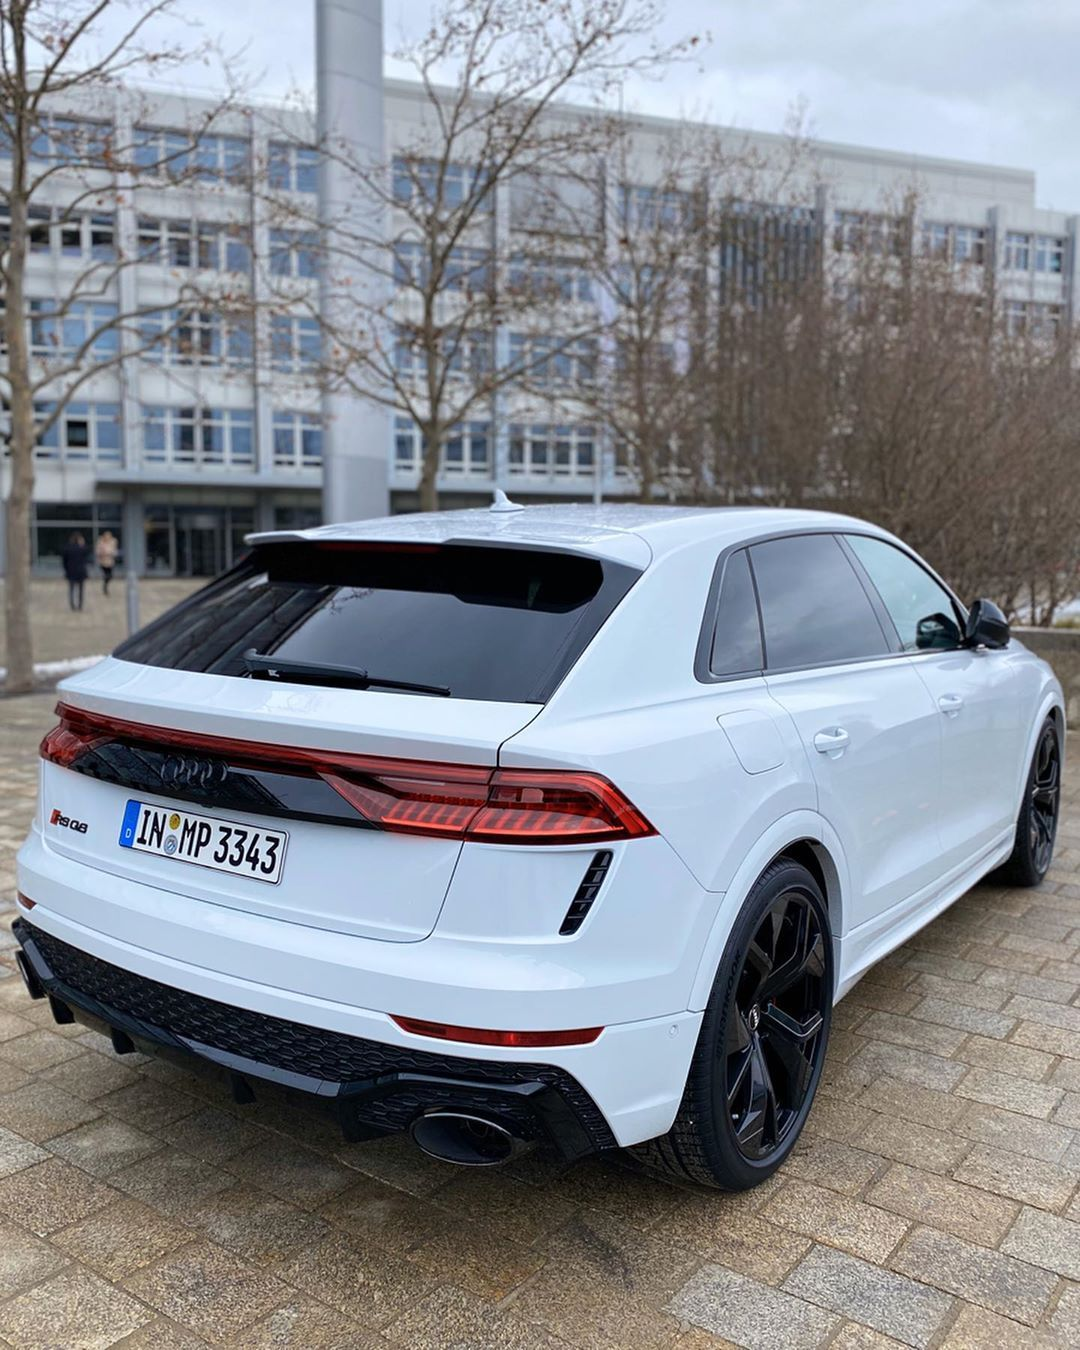 Audimotioningolstadt On Instagram Audi Rs Q8 Werbung